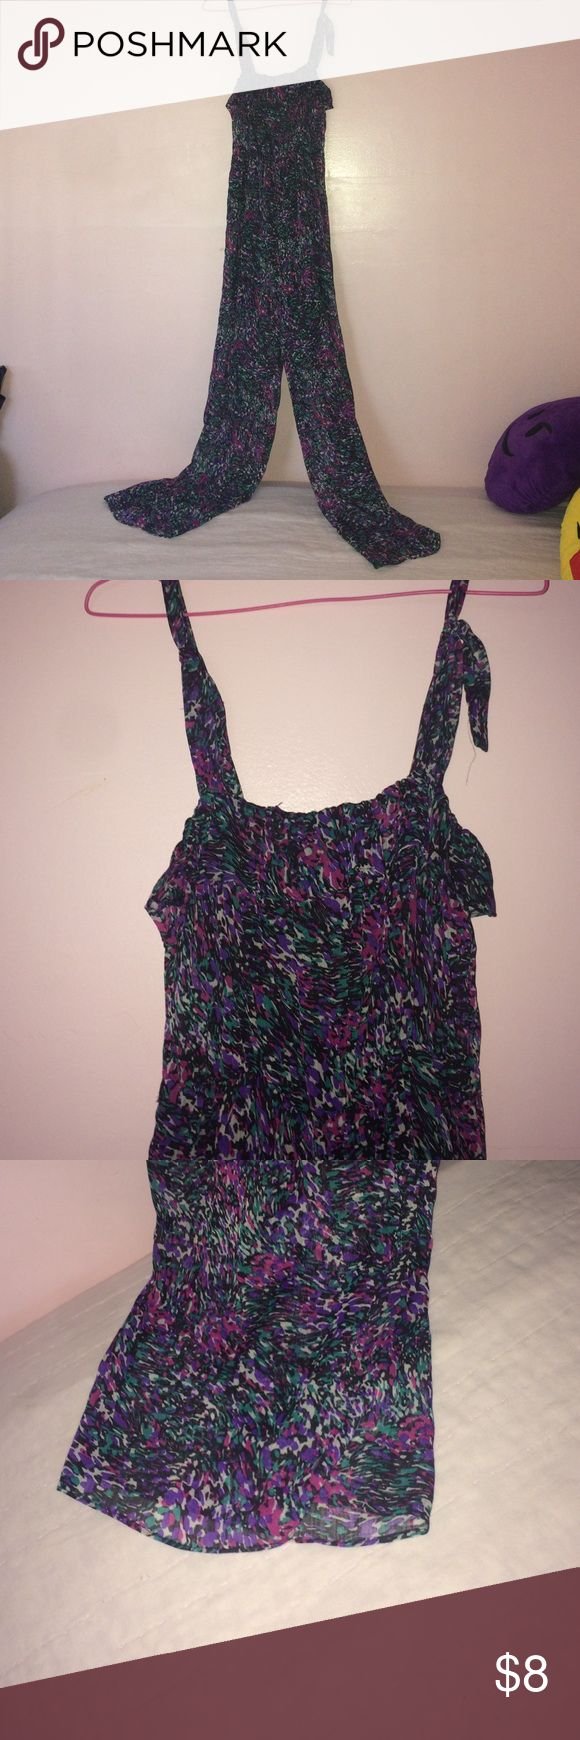 Purple Design Jumpsuit Great condition, no alterations, i'm 5'7 and it fits perfectly Dresses